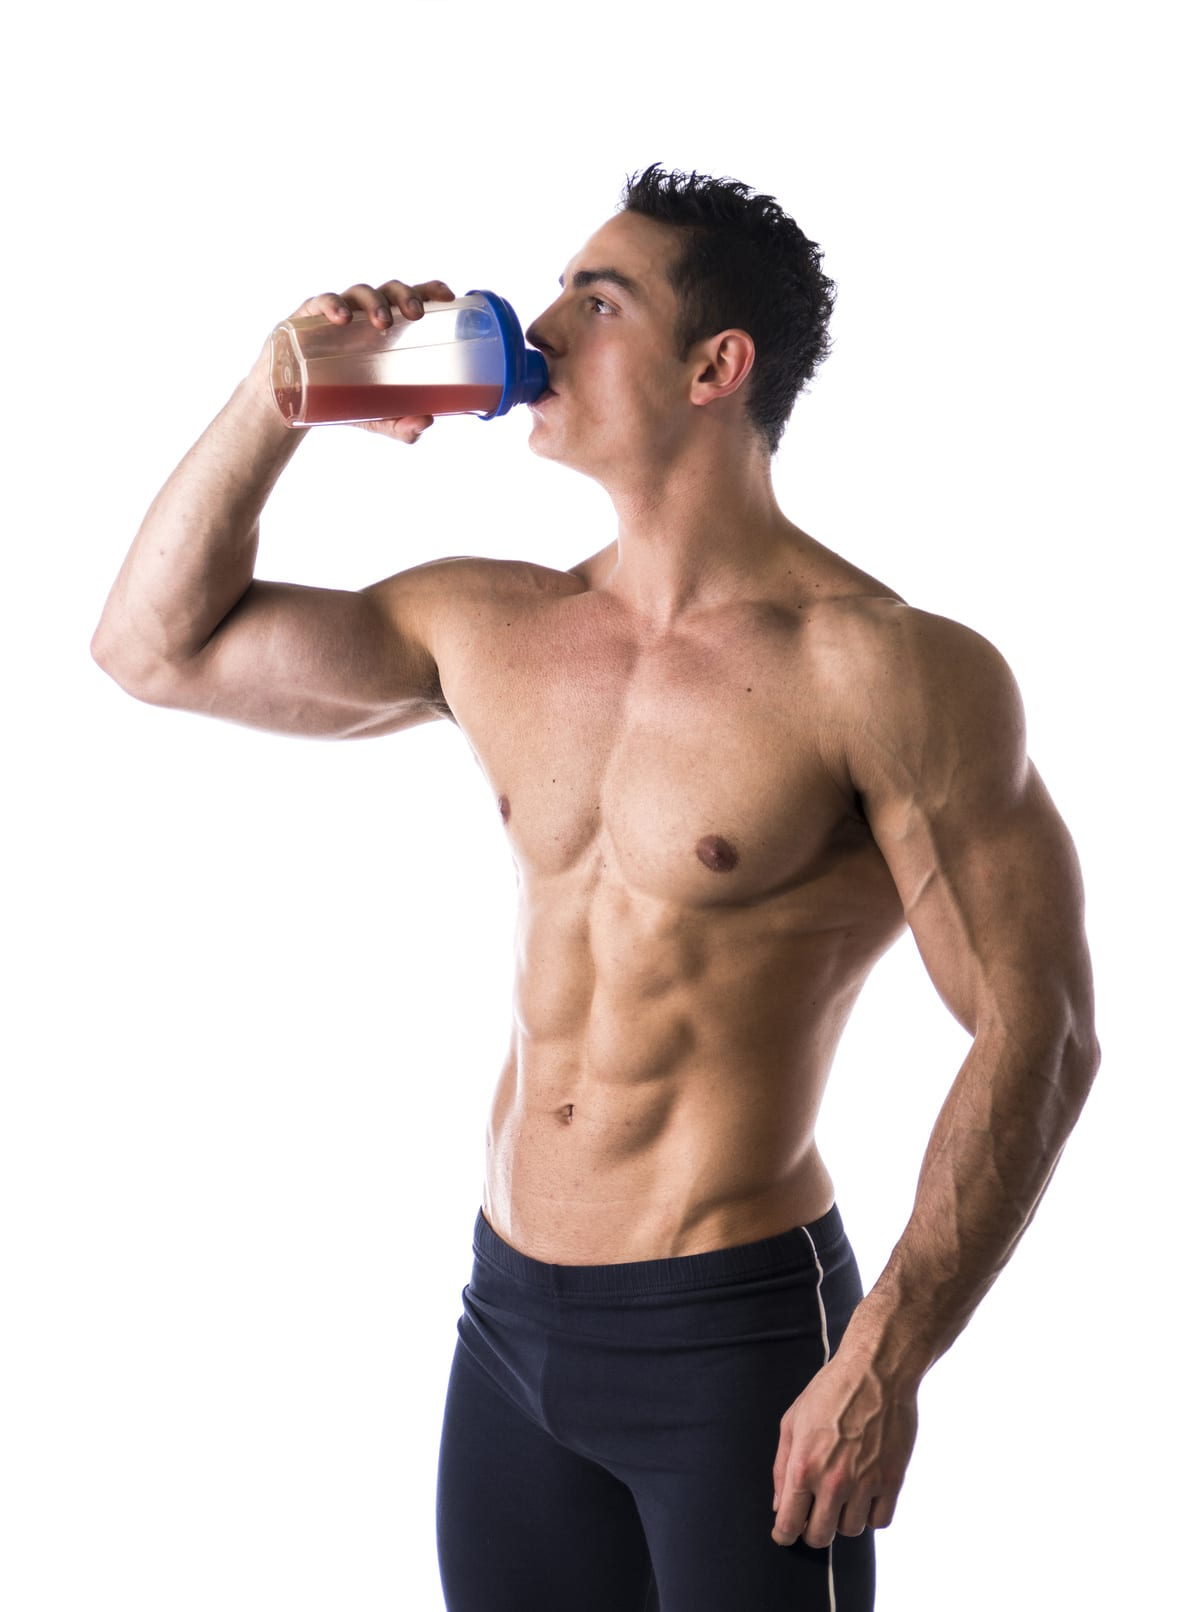 Are Protein Shakes Bad For You They Can Make Fat Lose Weight Whey After Workout Or Before